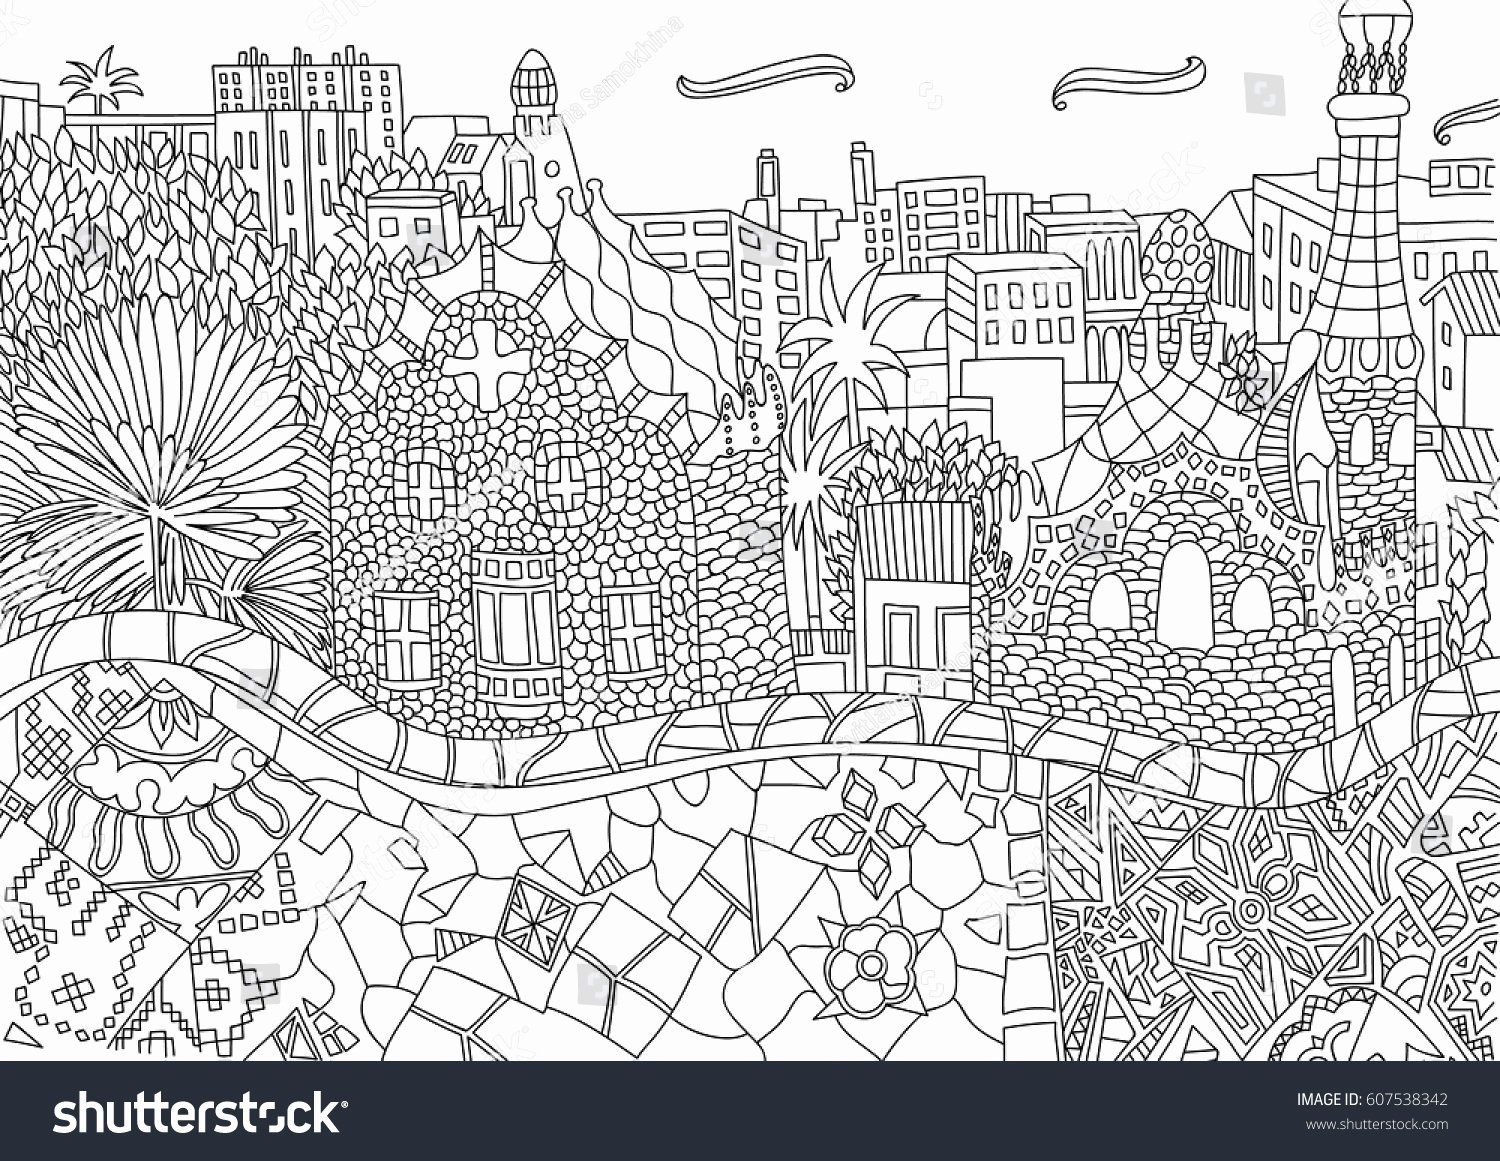 Capitol Building Coloring Page Inspirational Coloring Adult